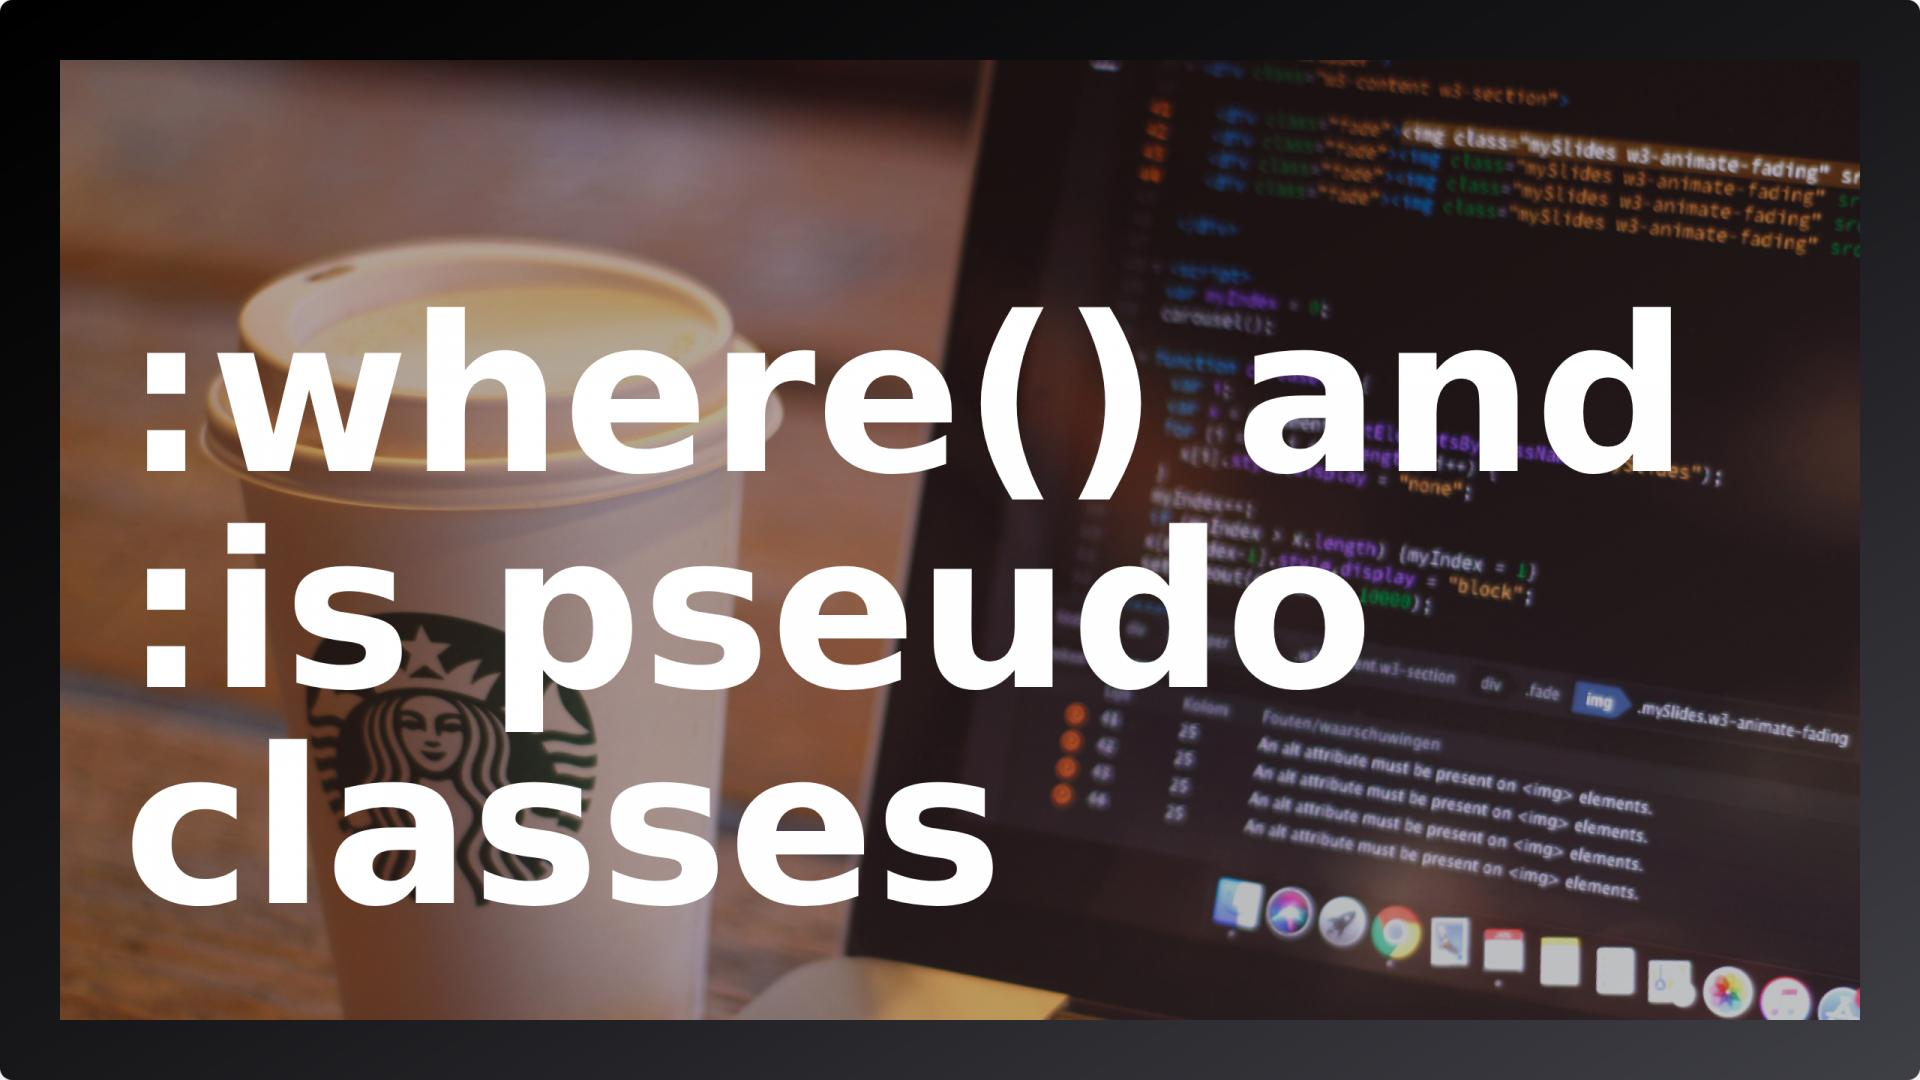 A new CSS :where() and :is pseudo classes